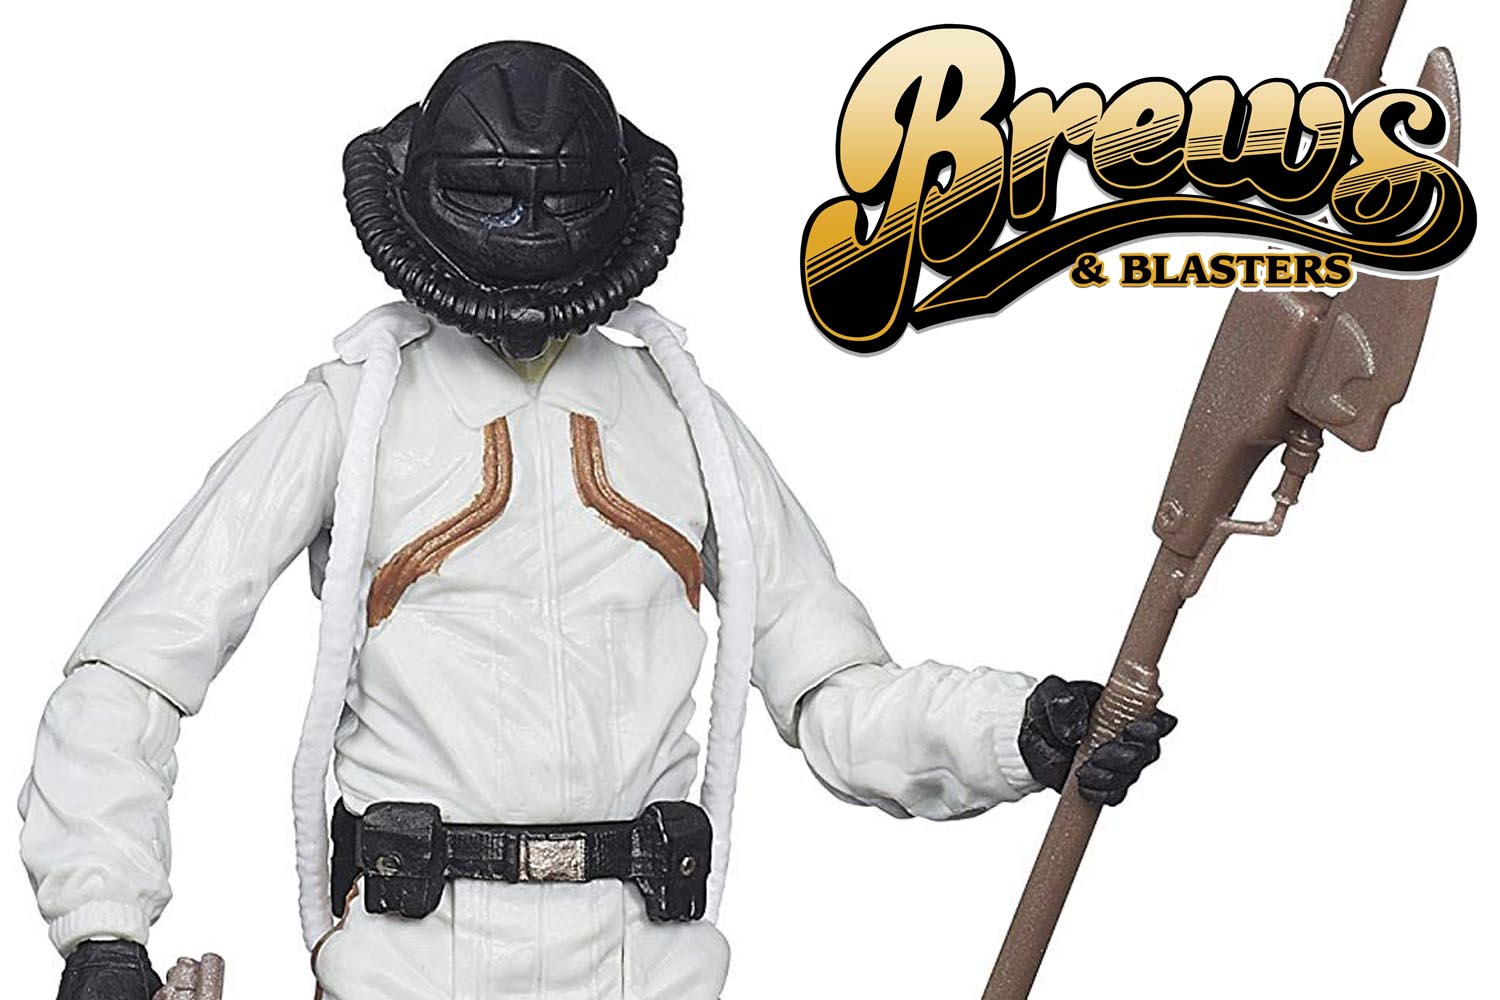 On this episode of Brews and Blasters, we aren't joking around at all: we're talking action figures for the entirety of this episode. We're definitely not singing the A-Team theme or anything like that. You might want to listen to the end, too, 'cause we got a contest going on! The Star Wars Party starts NOW! It's time for Brews and Blasters.